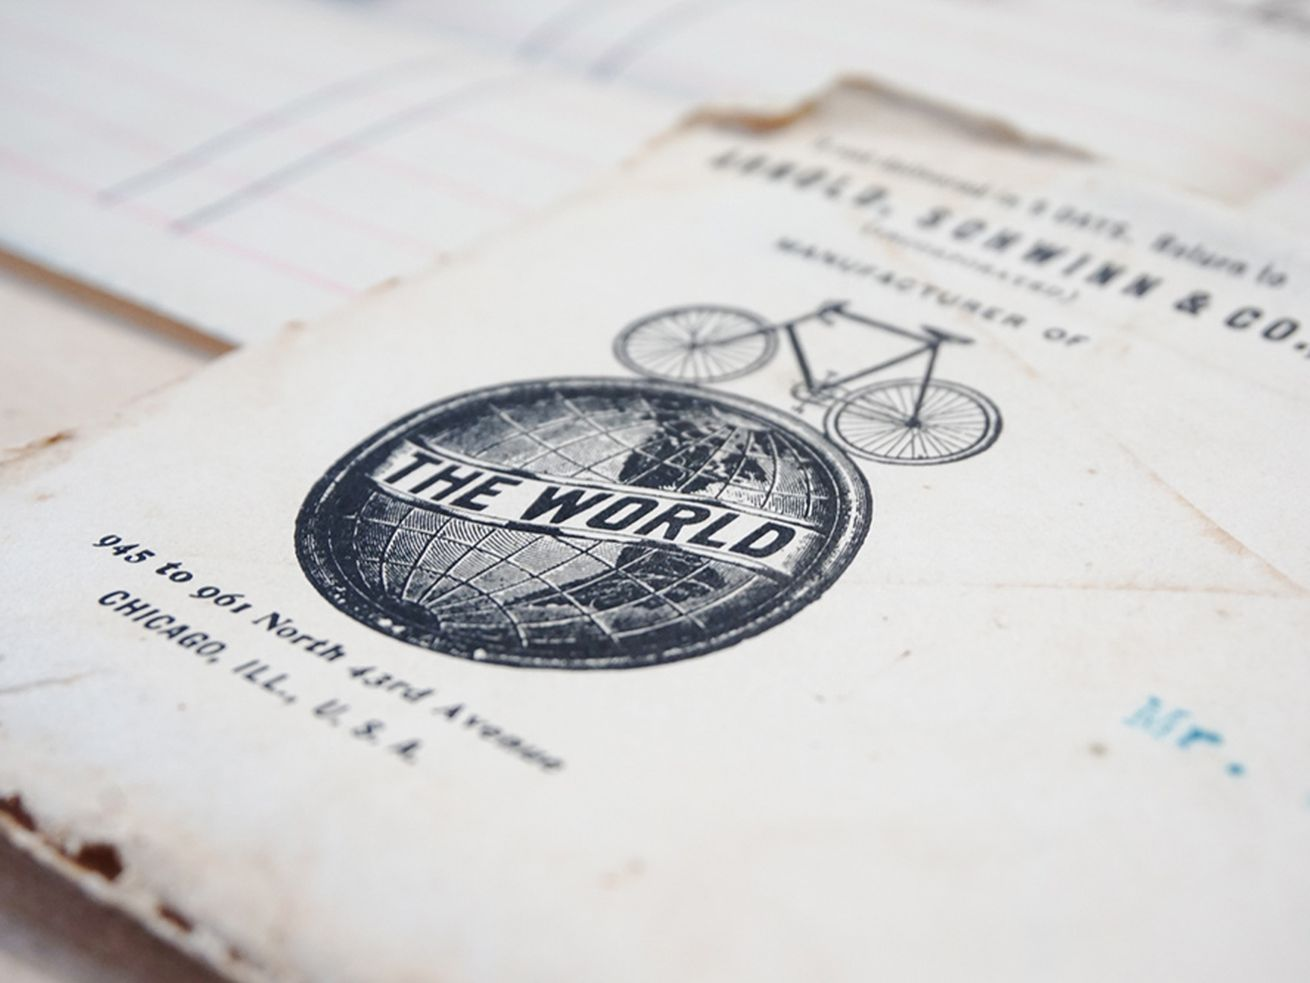 """Detail of Arnold, Schwinn & Co. stationery with """"The 'World' Cycles"""" branding, Arnold, Schwinn & Co., 1905."""